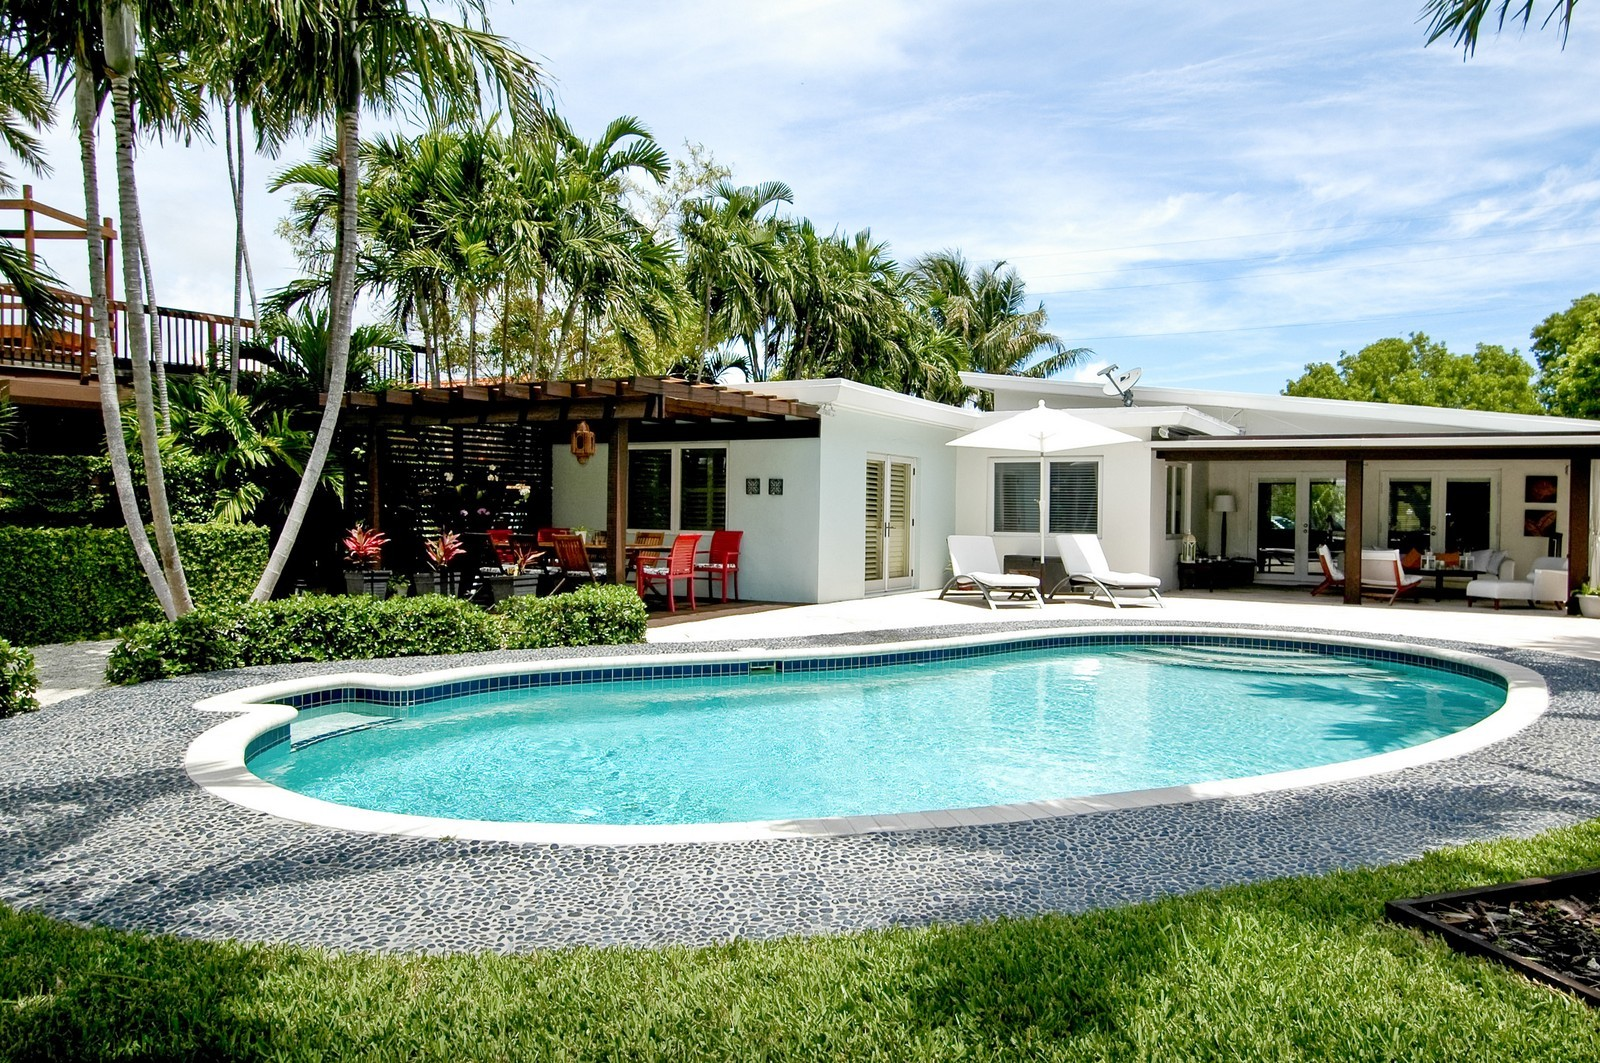 Real Estate Photography - 1500 Cleveland Rd, Miami Beach, FL, 33141 - Pool